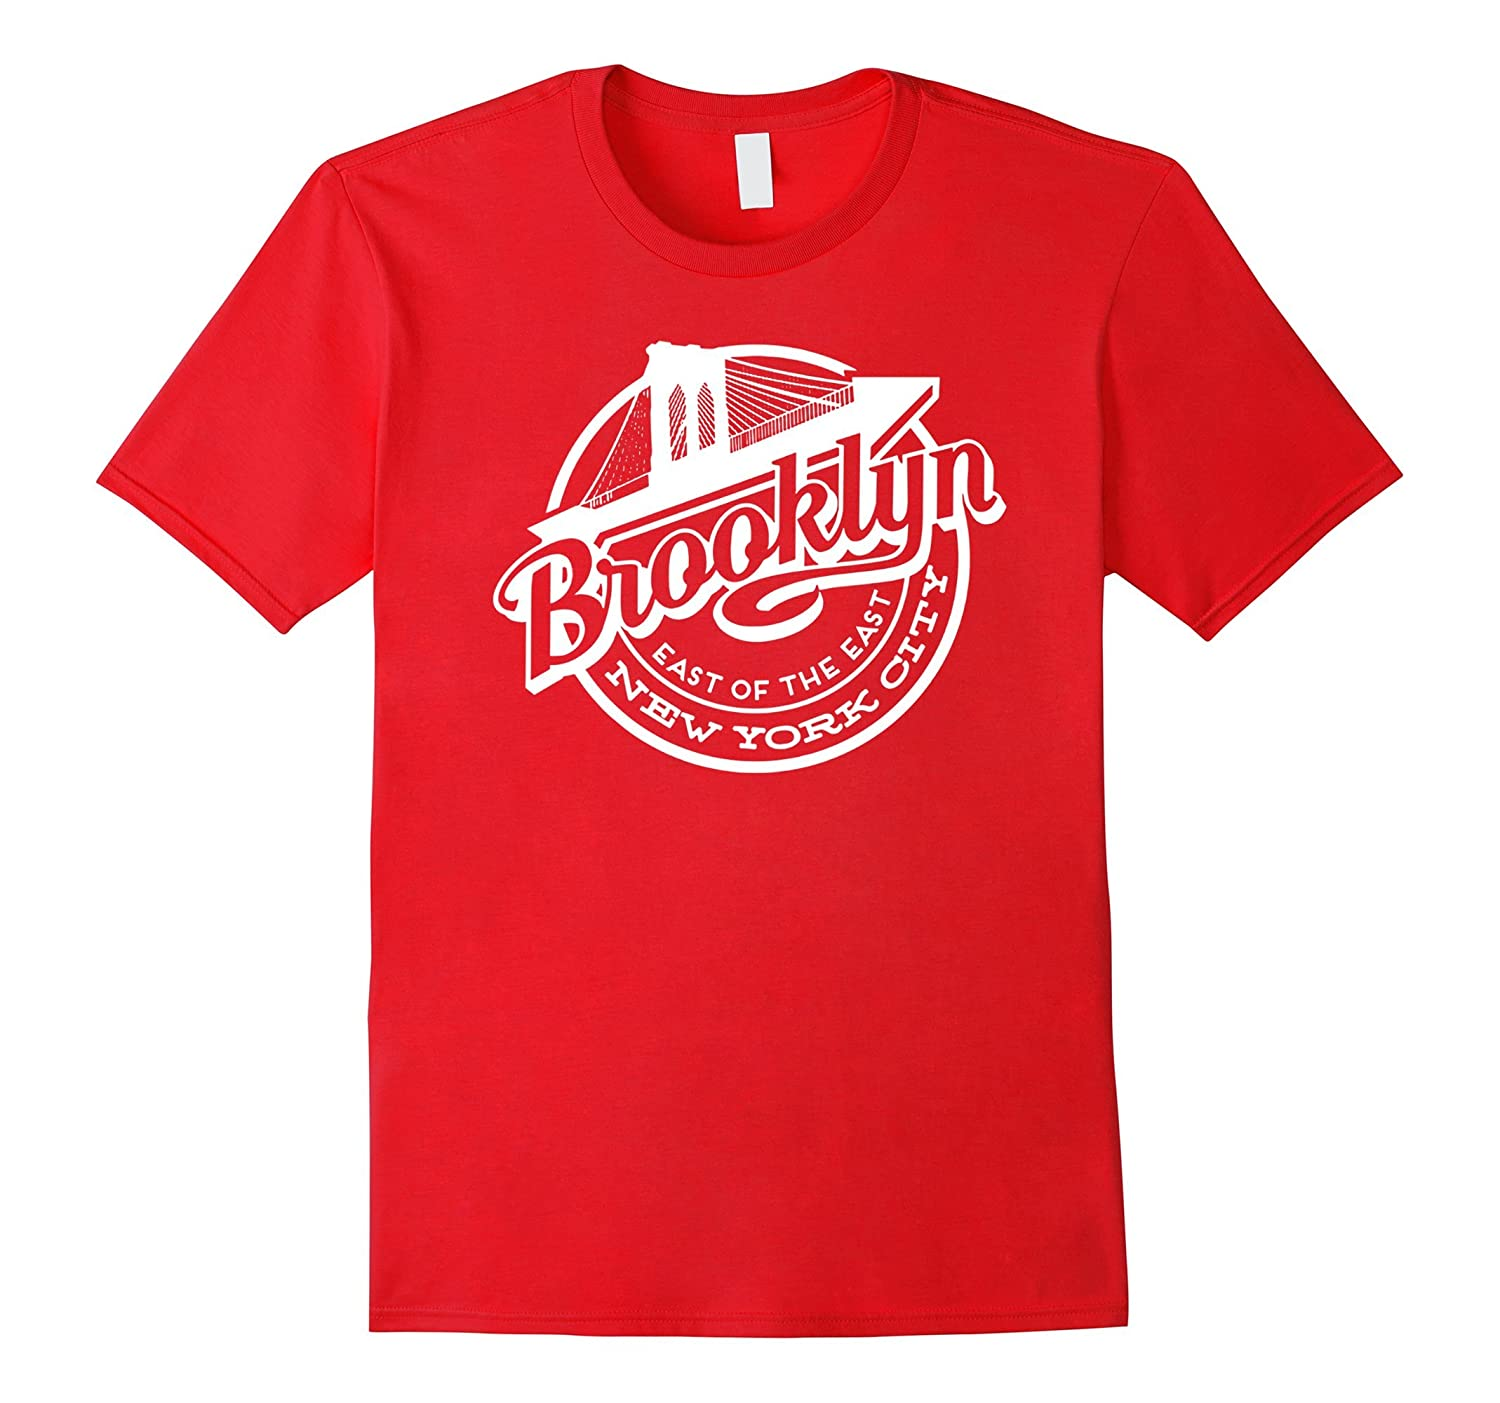 New York t-shirt Brooklyn Bridge t-shirt-Art